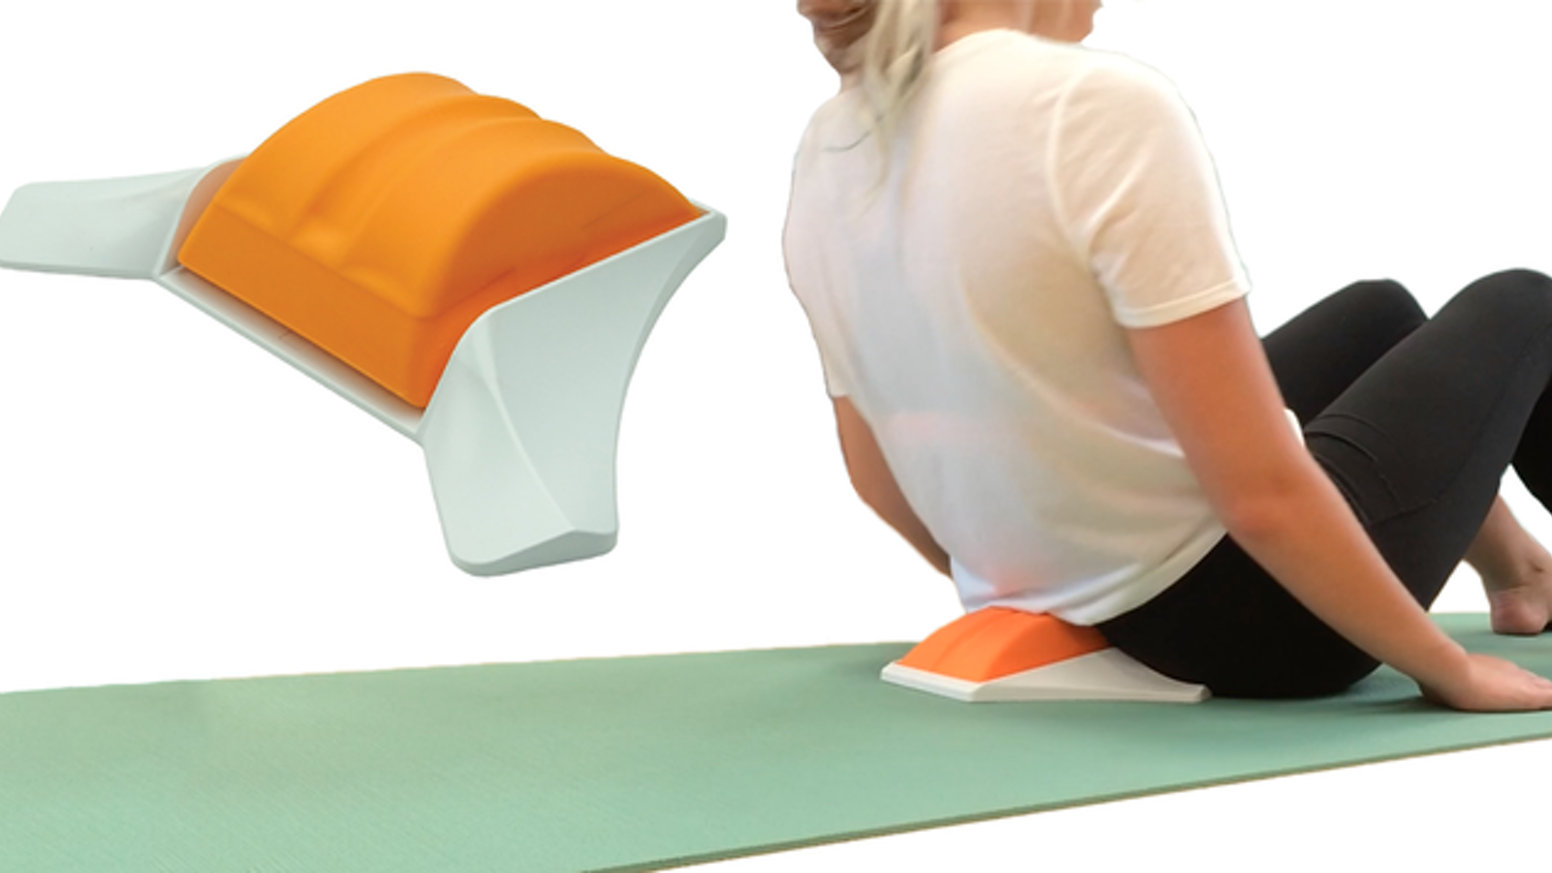 Rest Your Discs for 10 mins. It helps improve your posture, ease back pain & improve your health.